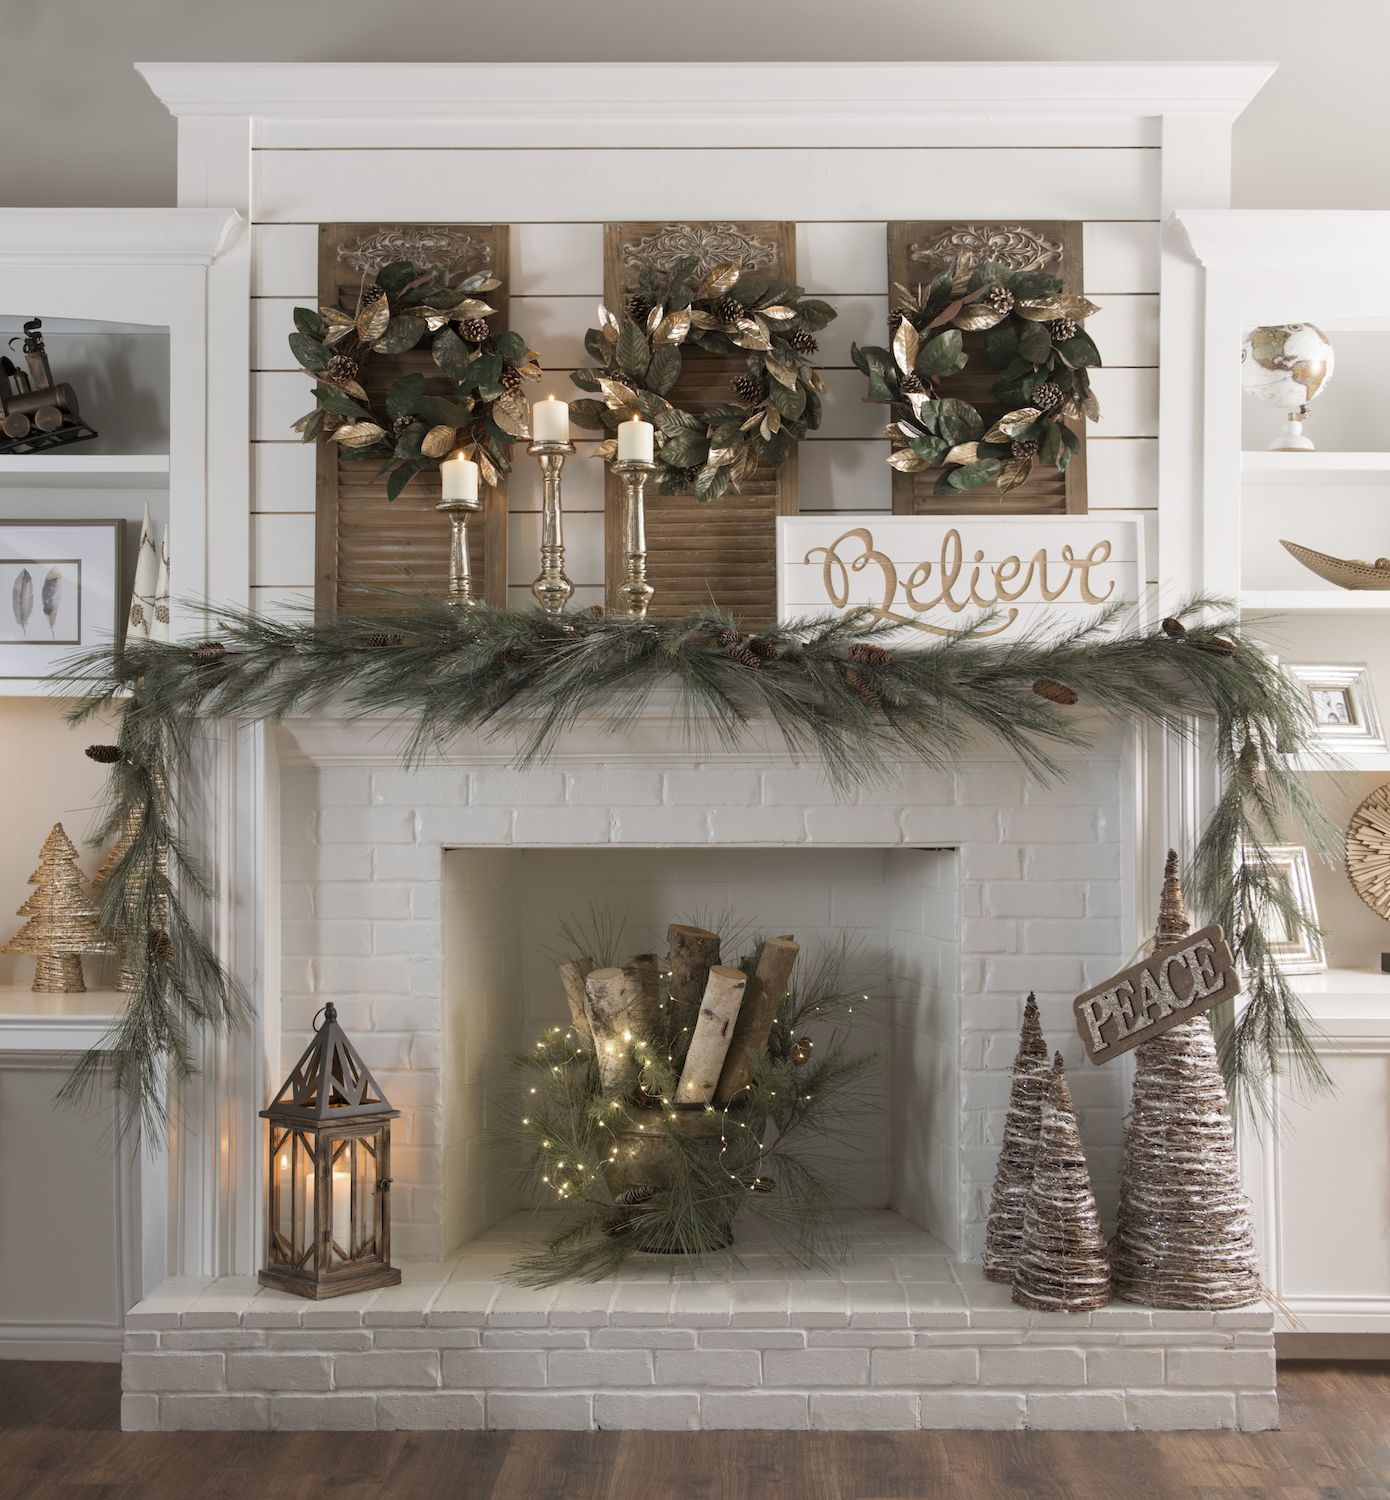 Fireplace Decoration With Edcdeacbbee Fireplace Design Fireplace 25+ Unique Kirklands Christmas Ideas On Pinterest